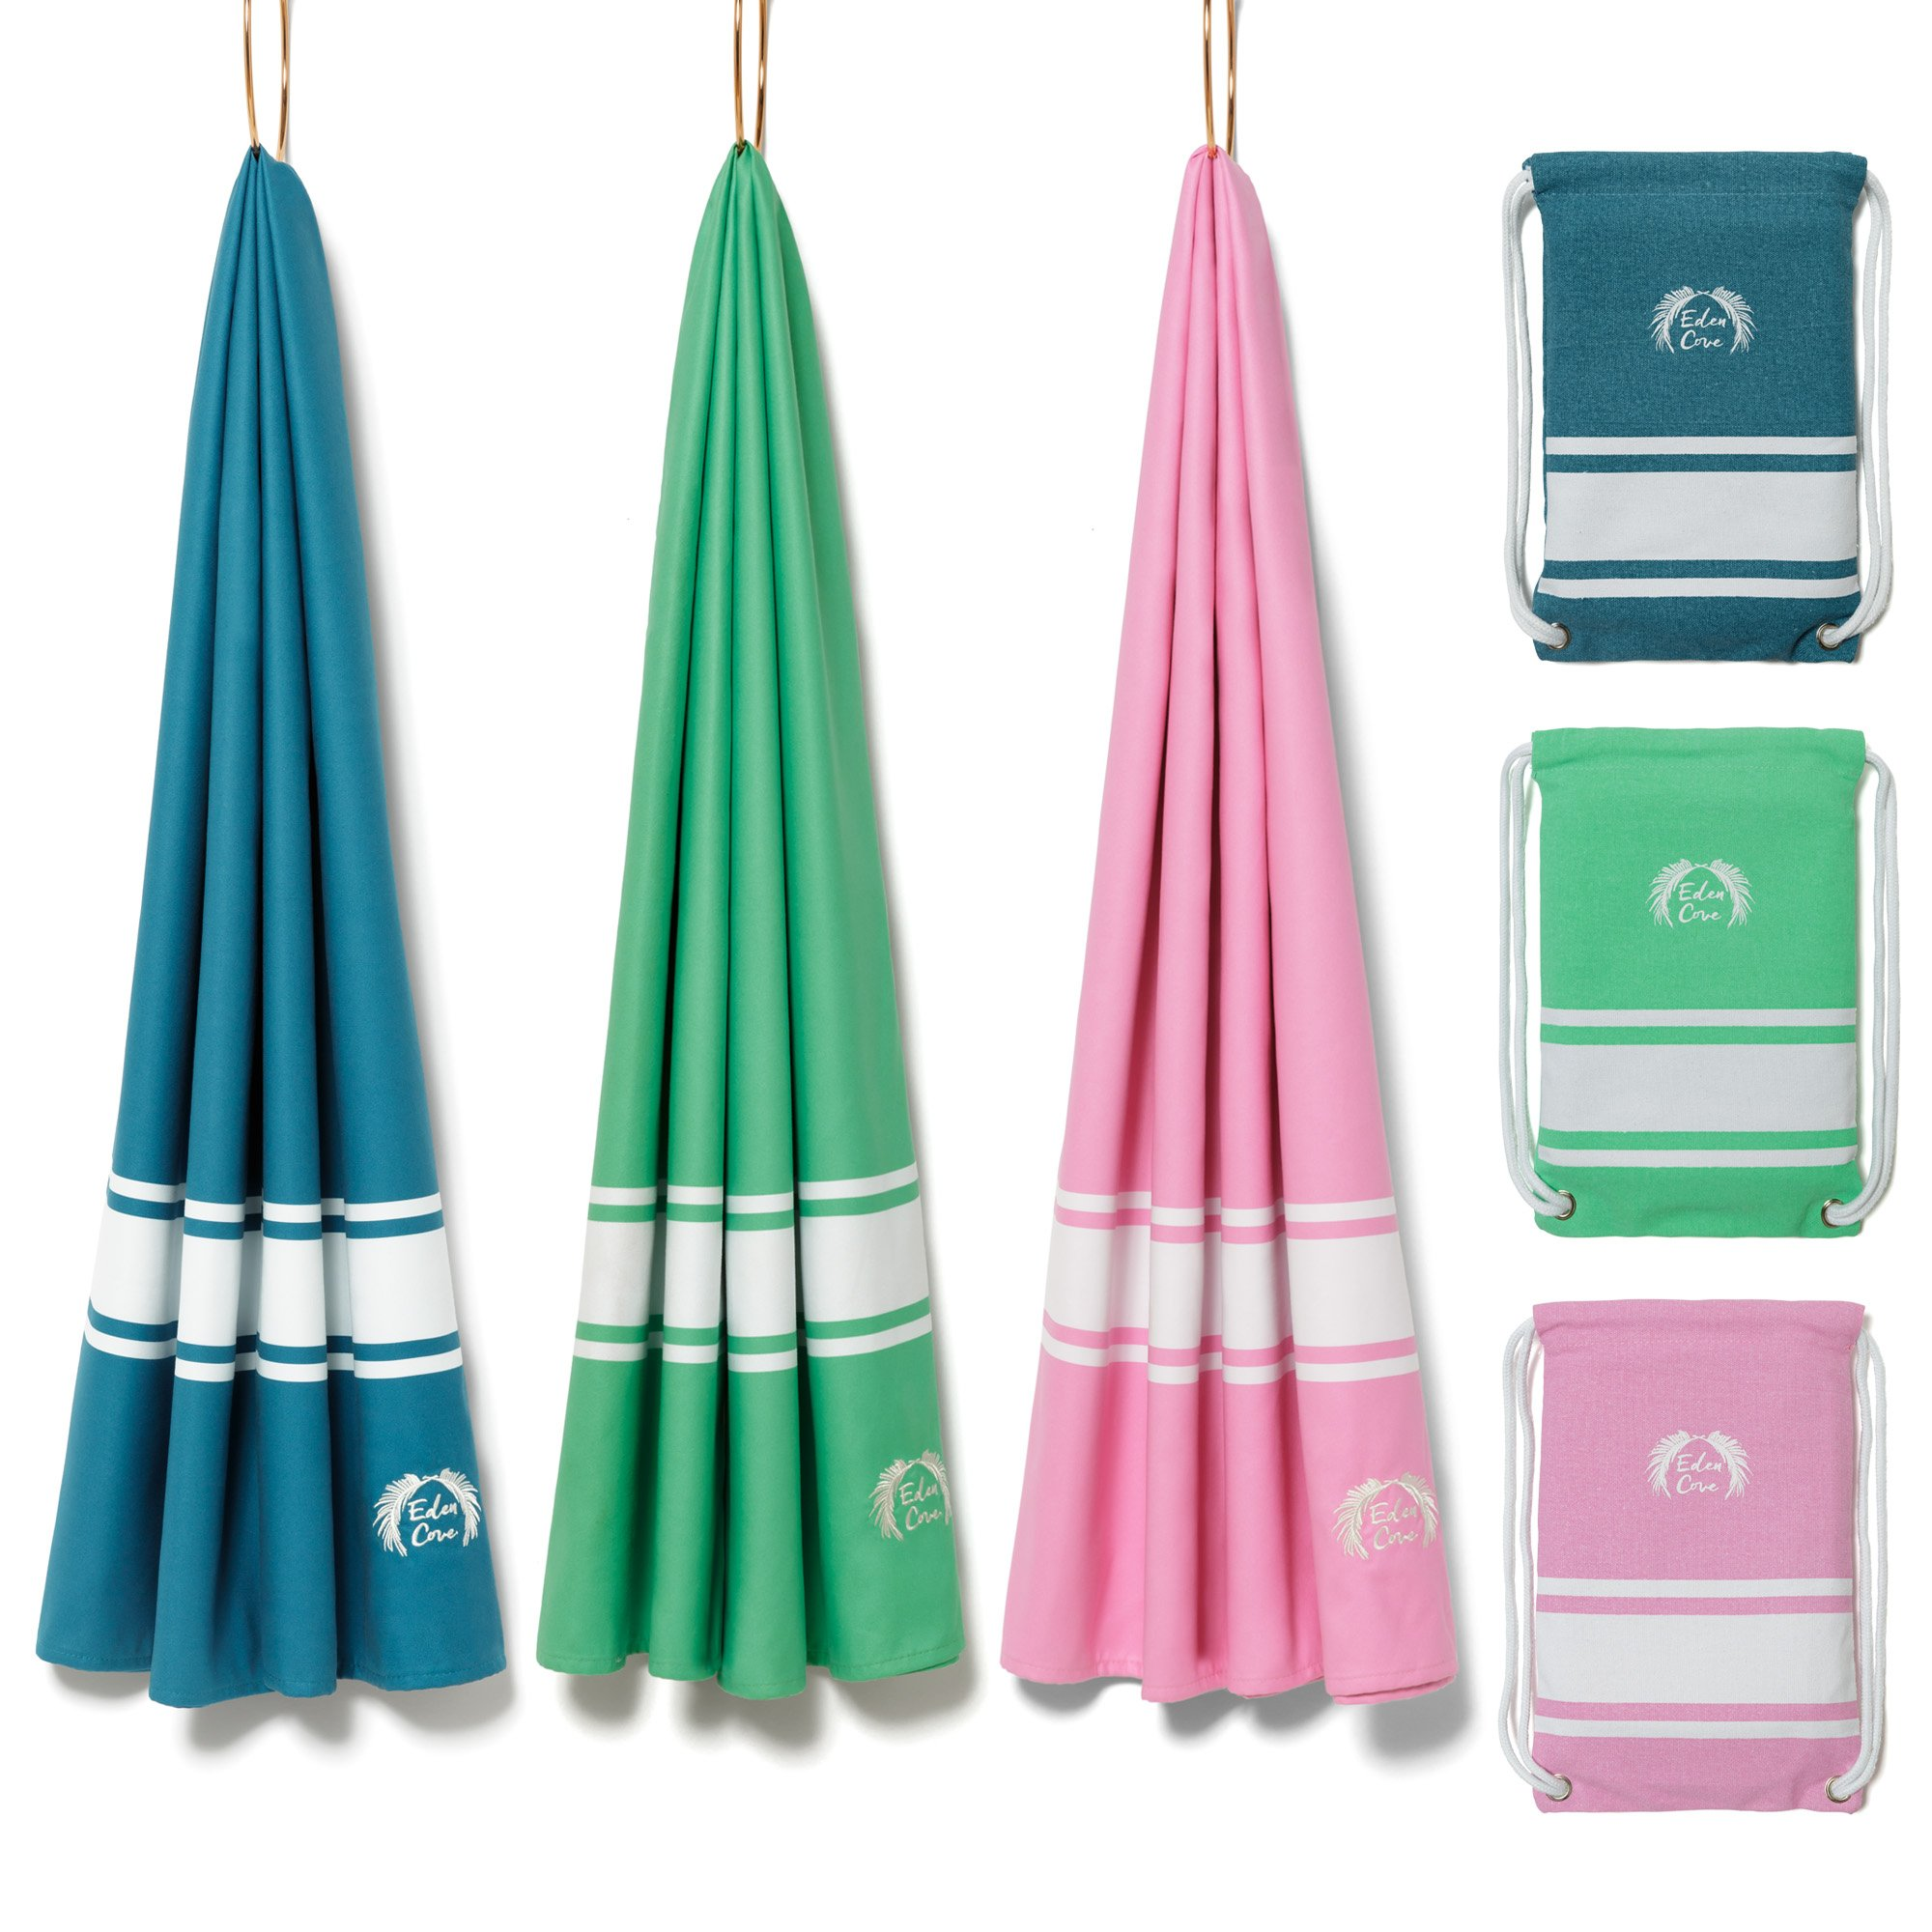 Eden Cove Microfiber Beach Towel, Quick Dry Travel Towel & Canvas Bag - Extra Large 71x39'' in Mint Green - Fast Drying, Compact, Lightweight, Absorbent - for Beach, Travel, Swimming, Gym, Sports.